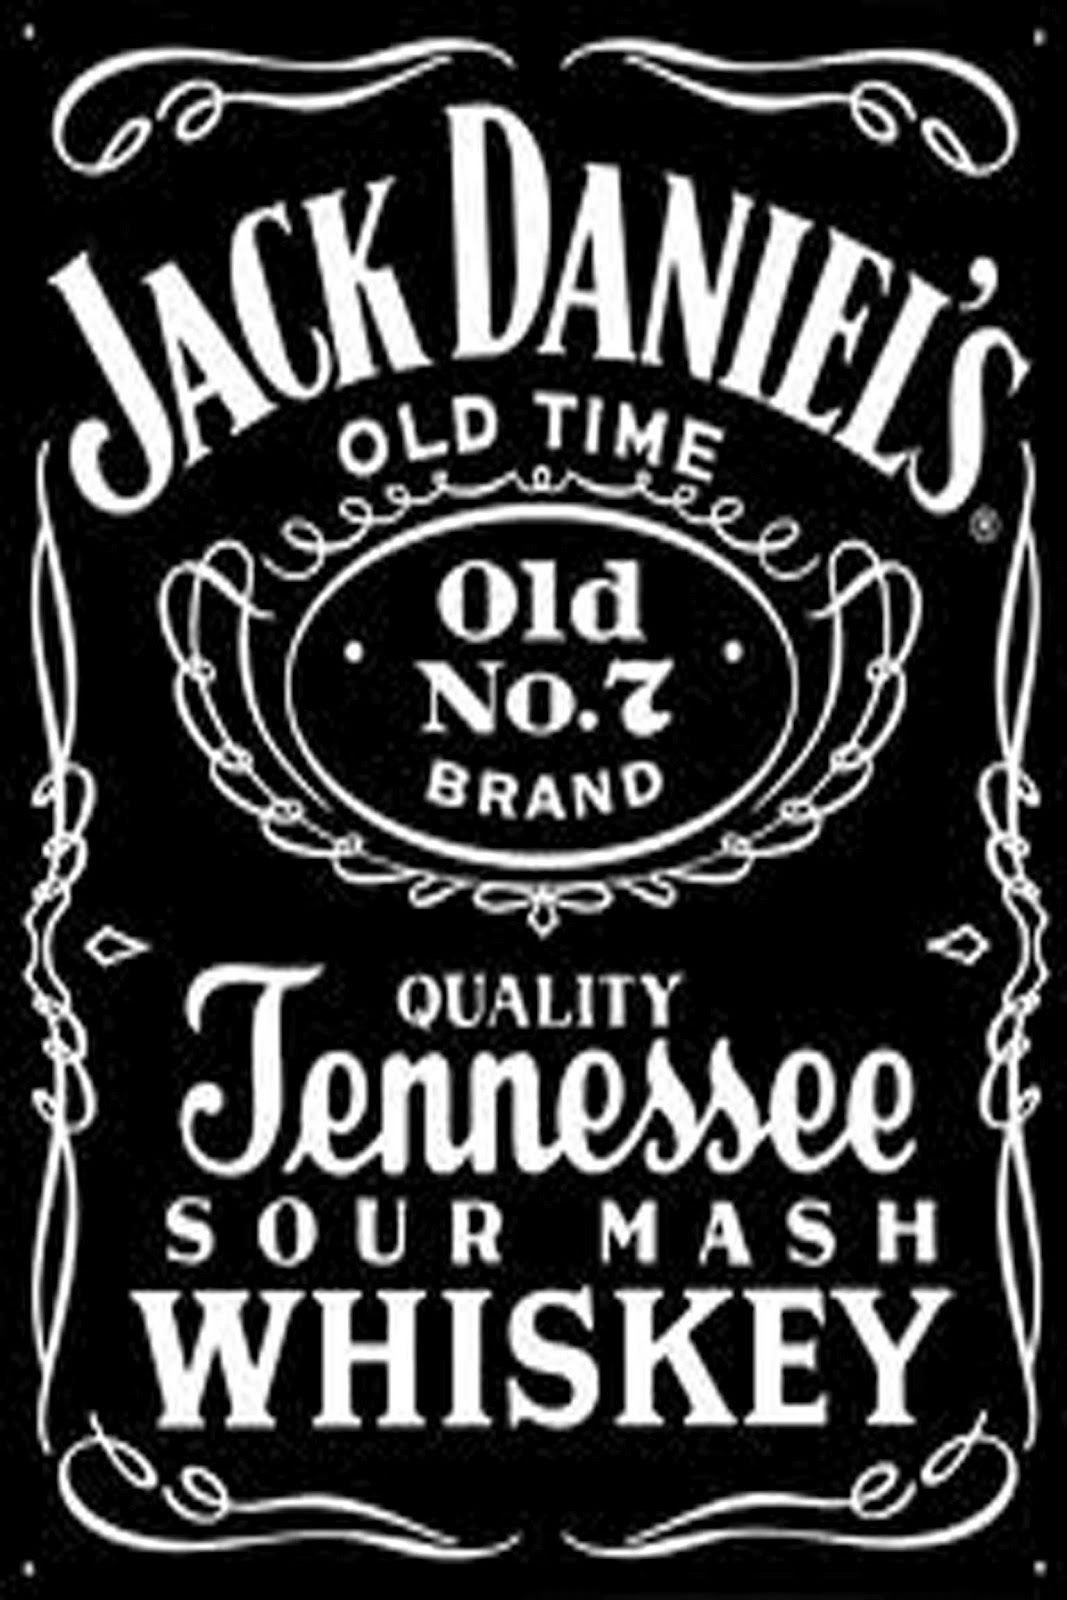 Image for whiskey jack daniels wallpaper gallery lugares para image for whiskey jack daniels wallpaper gallery voltagebd Image collections